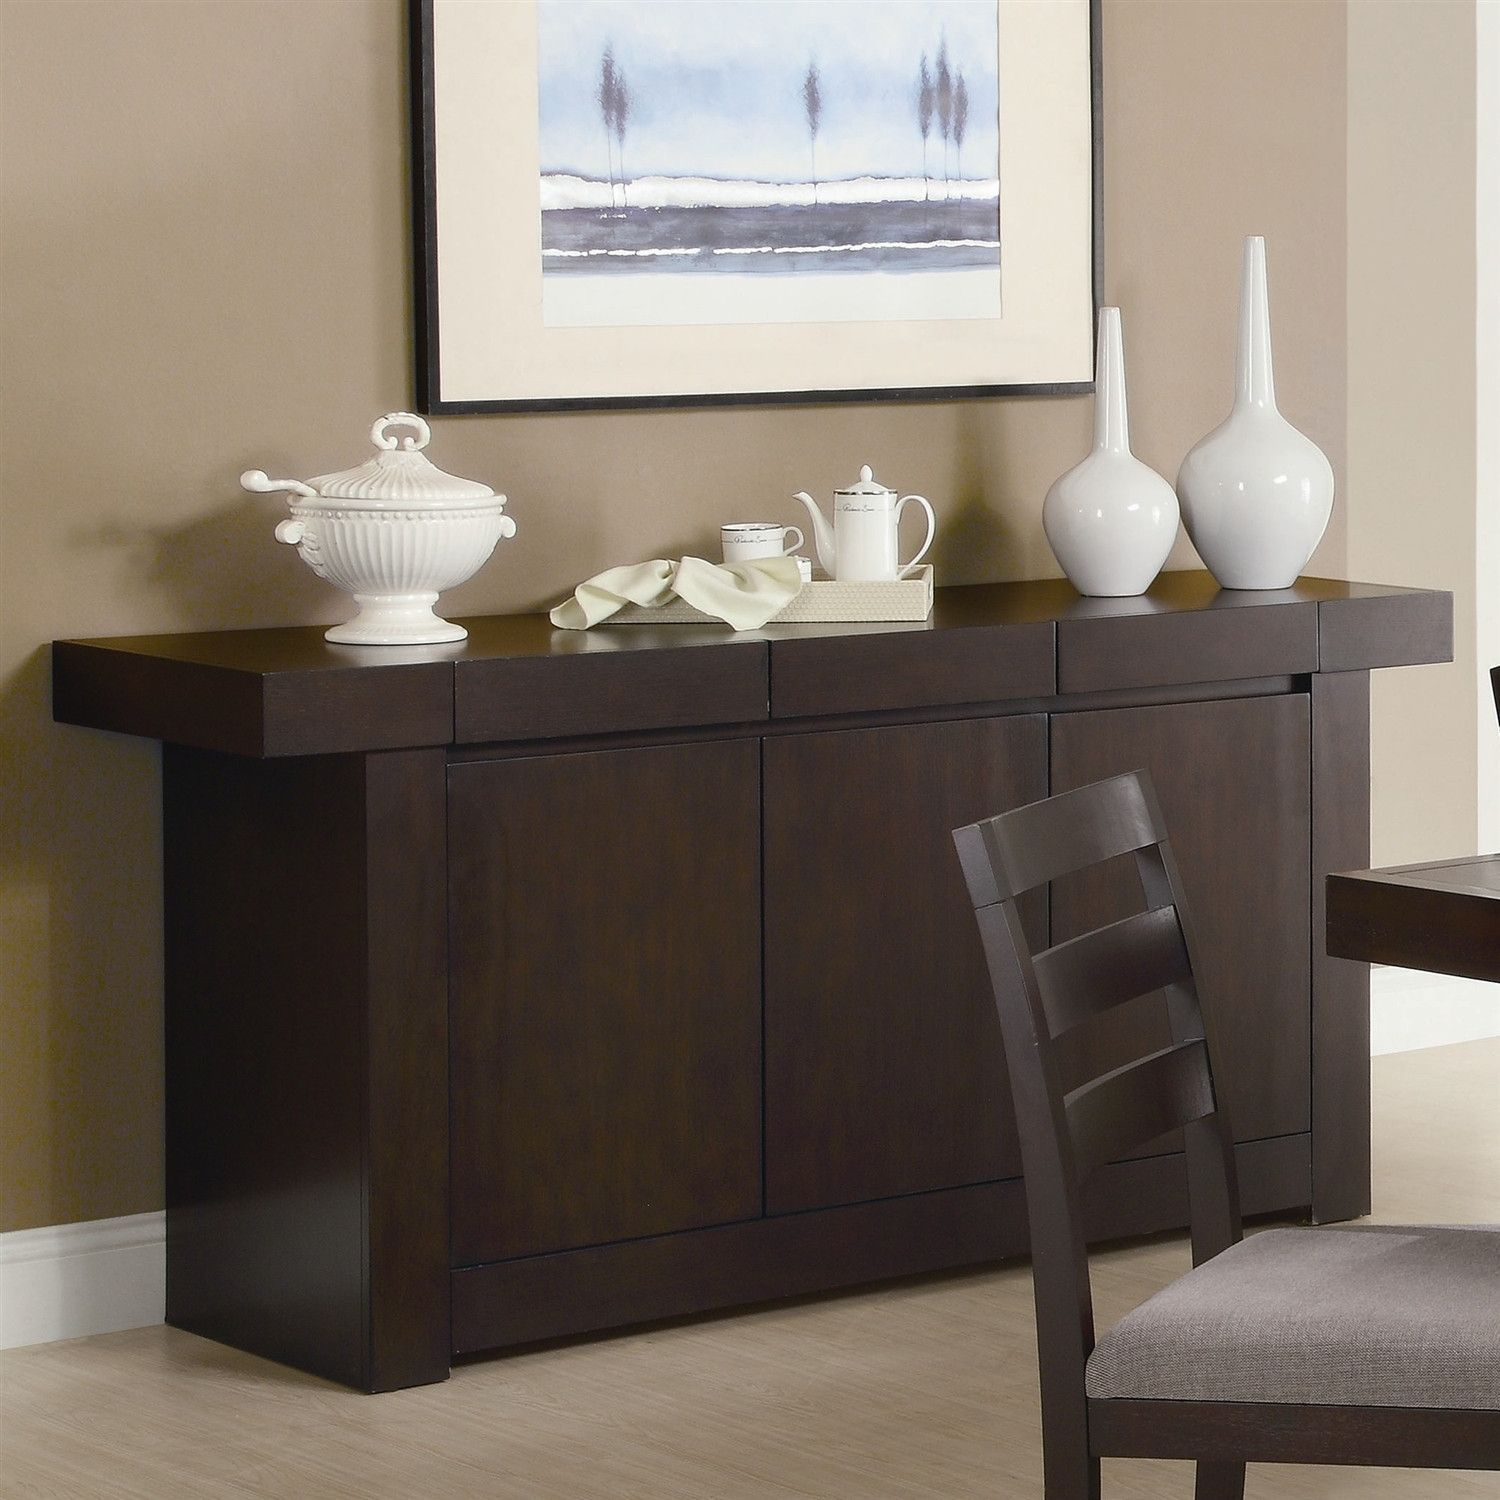 The Storage Drawers And Space Inside The Cabinet Doors Make This Modern Dining Room Sideboa Decoracion De Cocina Muebles De Comedor Modernos